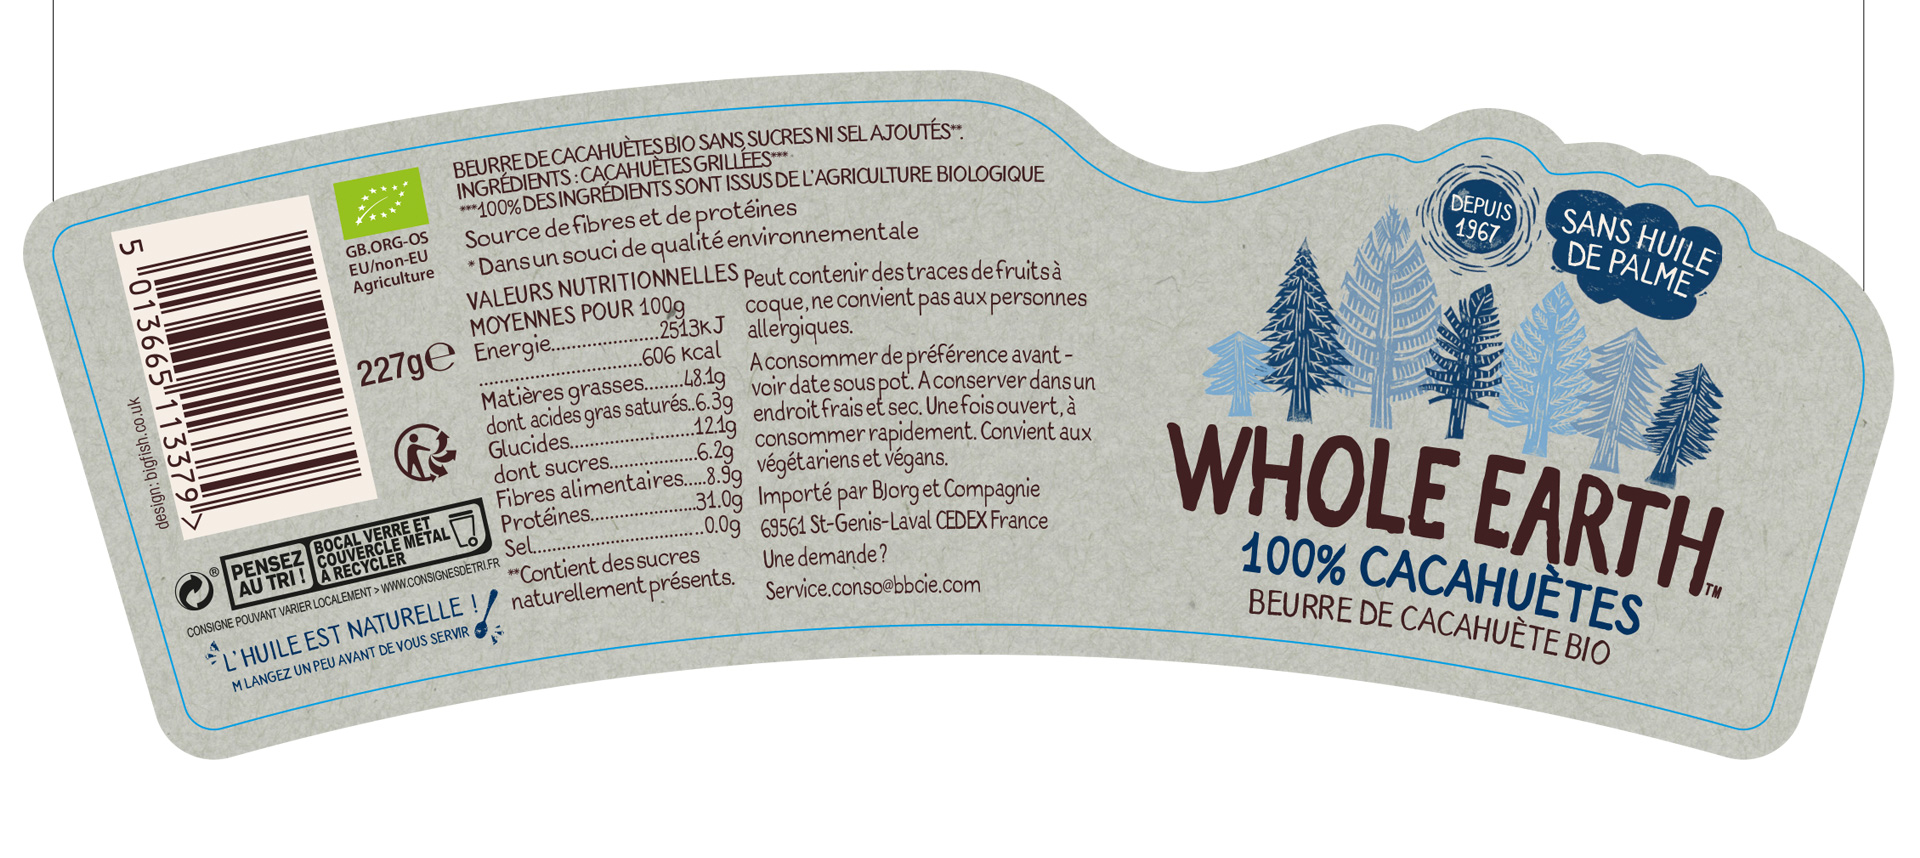 localisation-food-packaging-artwork-whole-earth